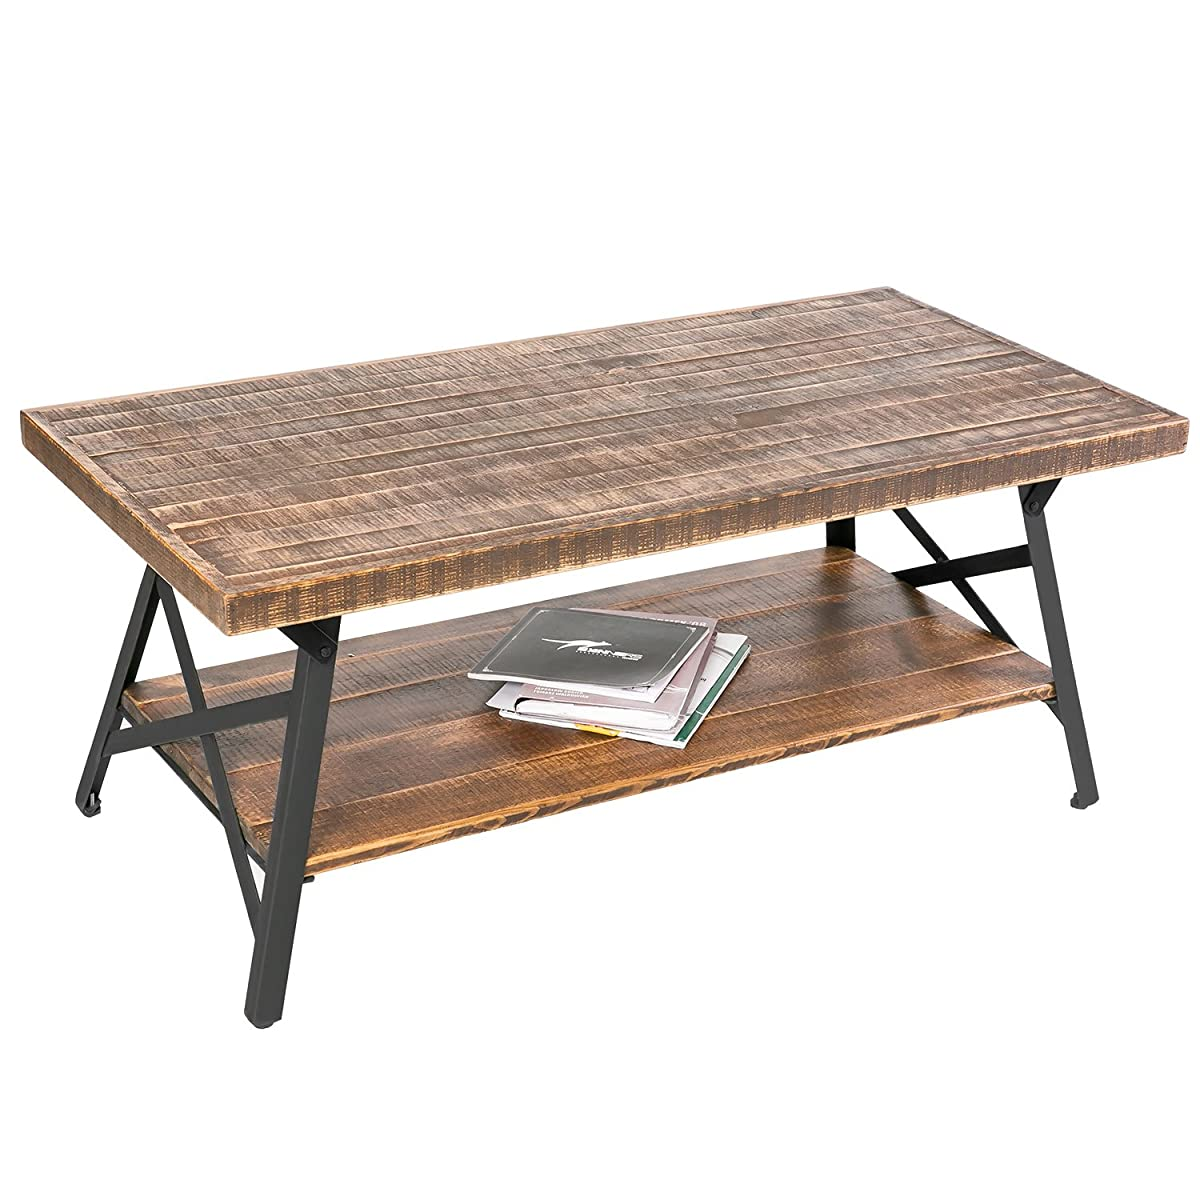 "Harper&Bright Designs 43"" Wood Coffee Table with Metal Legs, End Table/Living Room Set/Rustic Brown (Brown Coffee Table)"